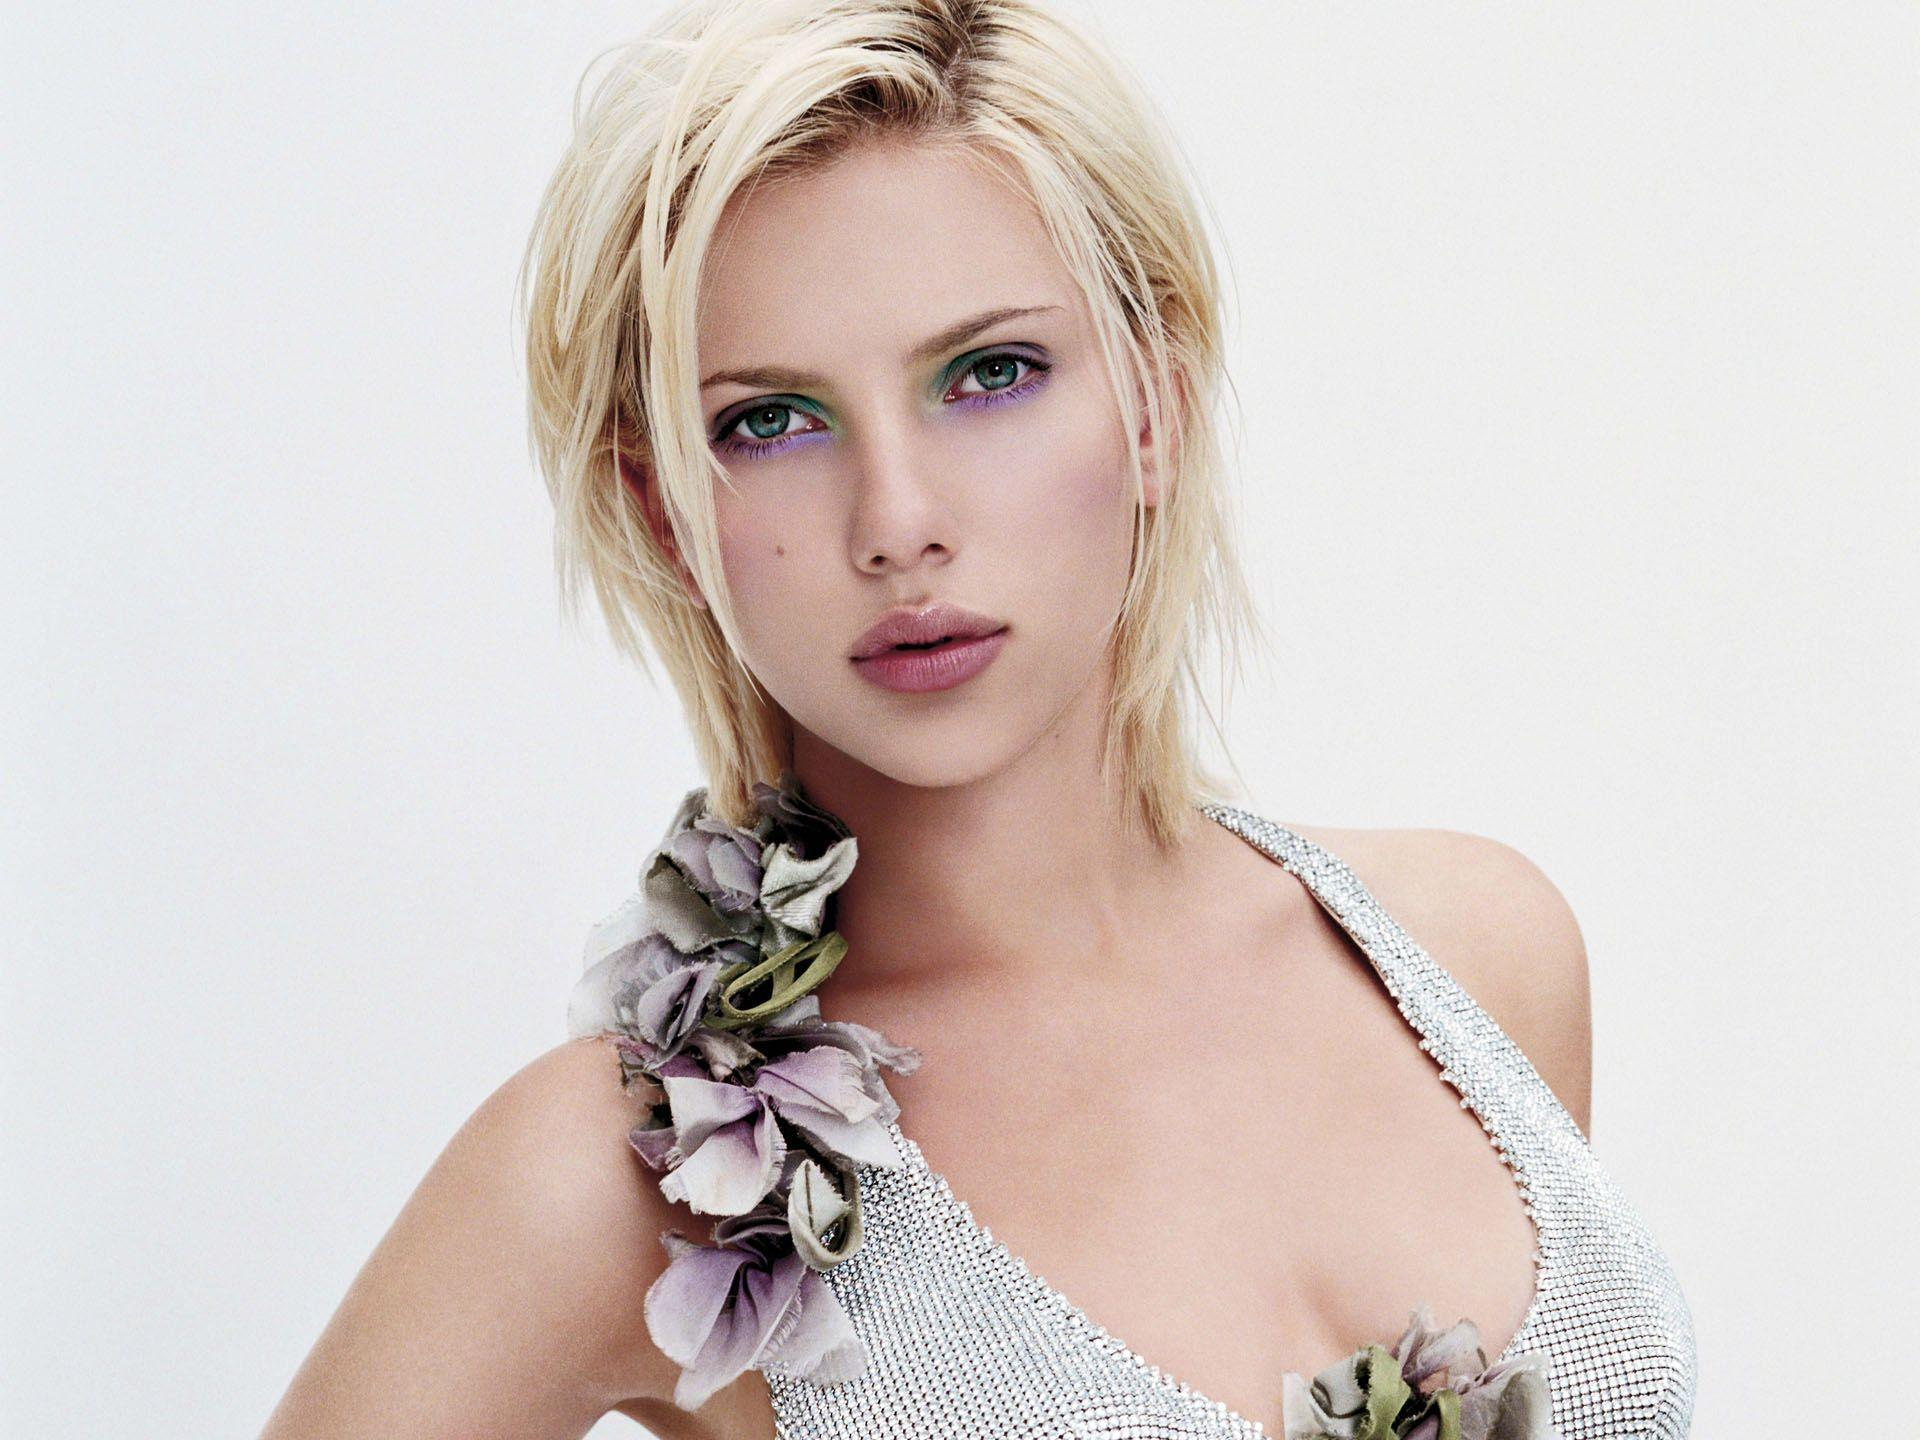 Scarlett Johansson Wallpaper 35 Backgrounds | Wallruru.